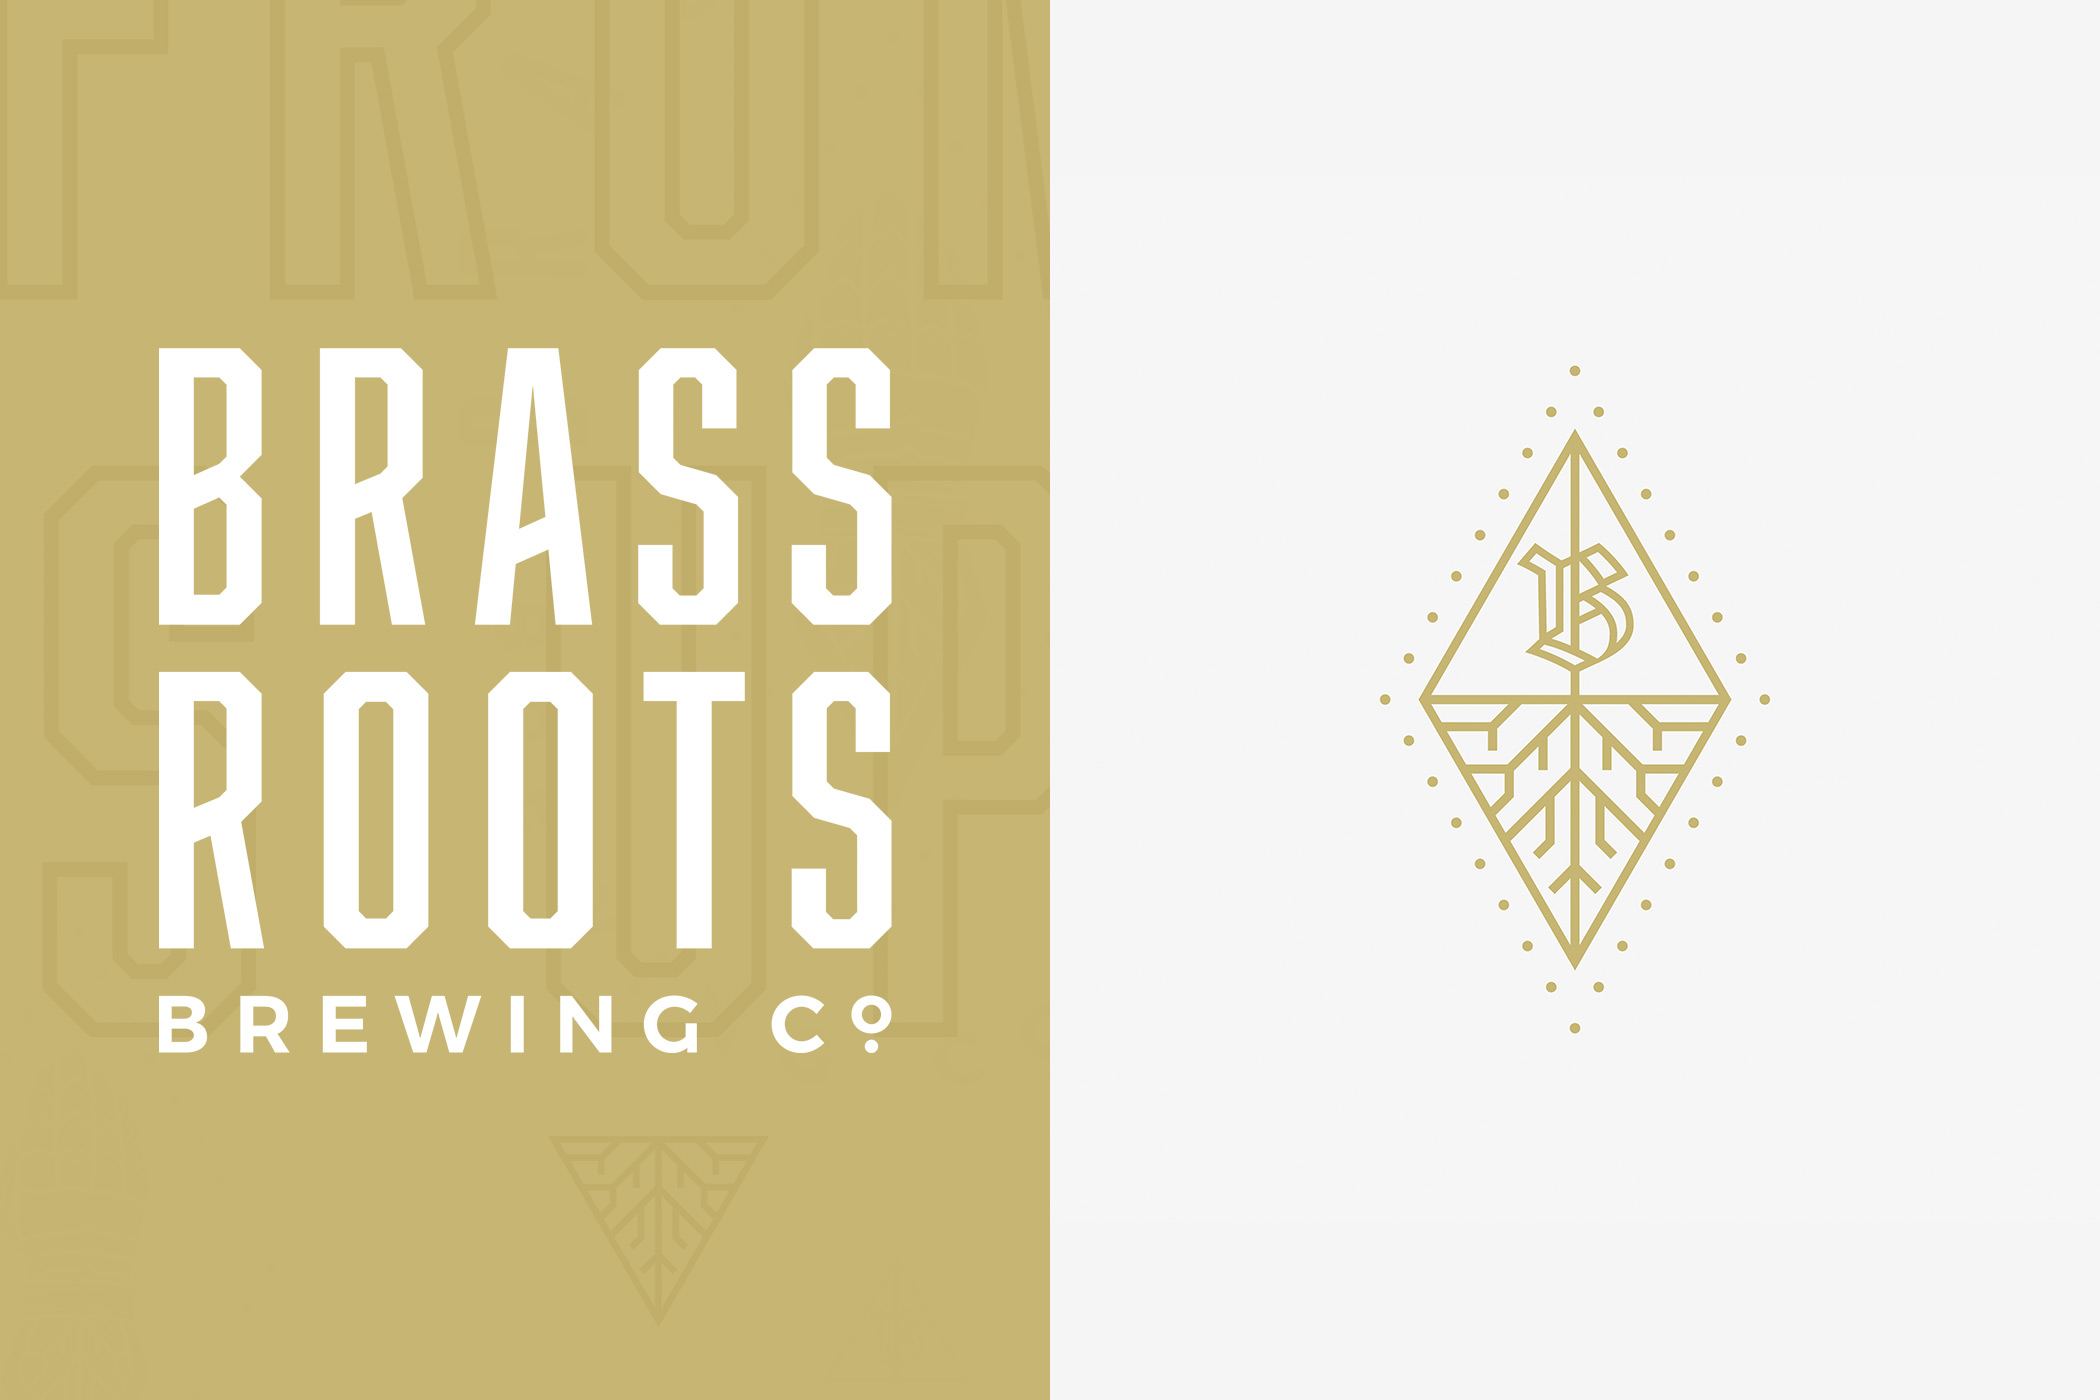 Image 3_Brassroots Brewing Co.jpg